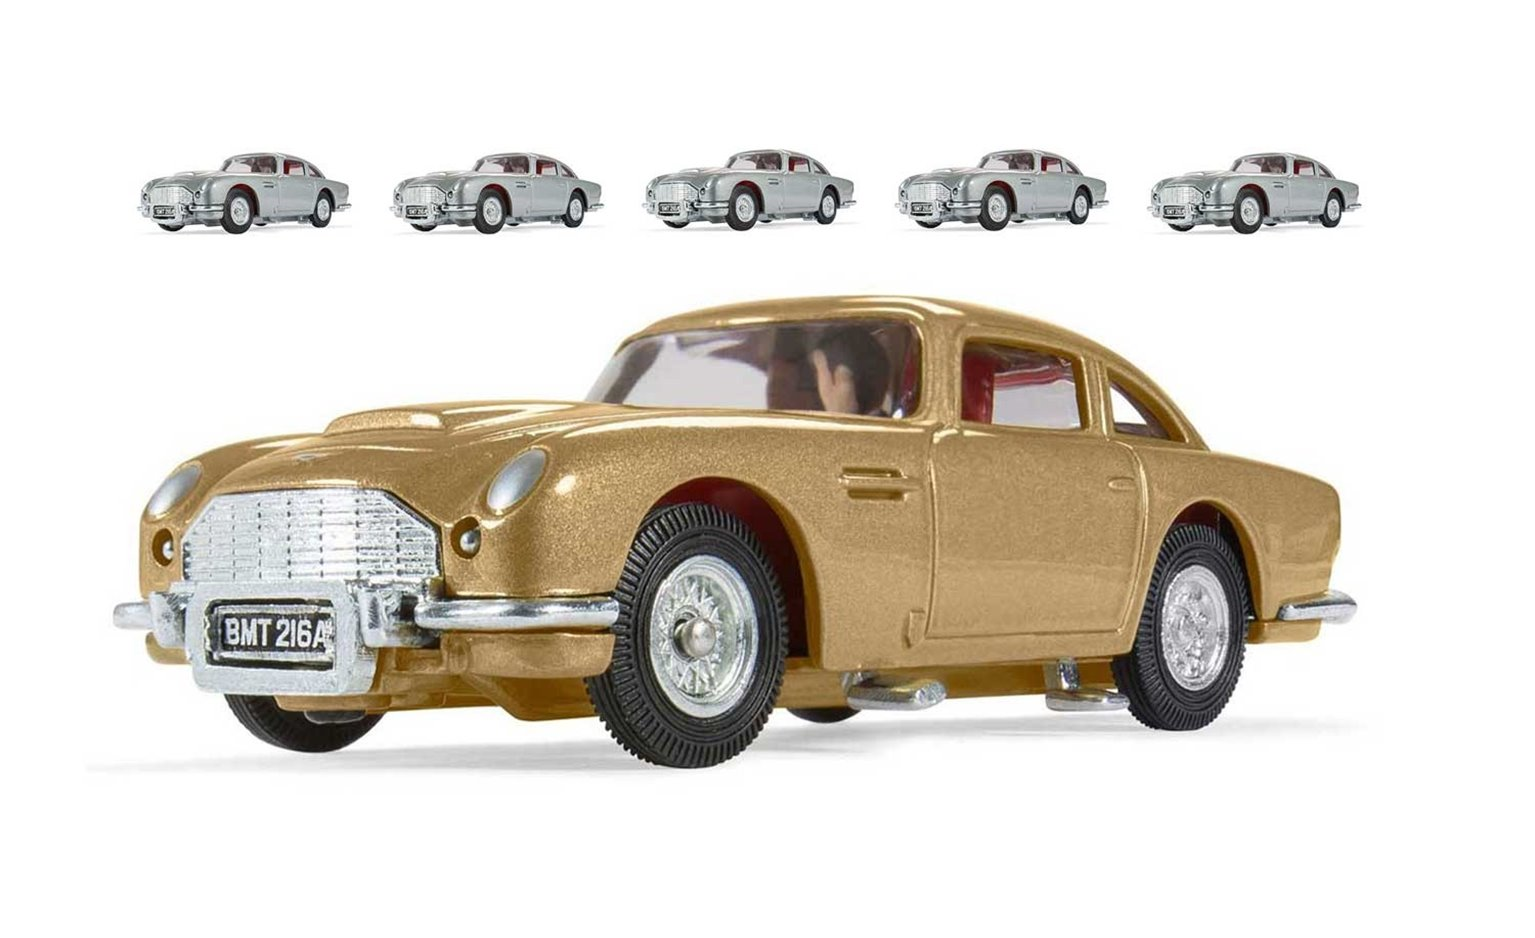 cc04206 corgi box of six james bond 007 aston martin db5